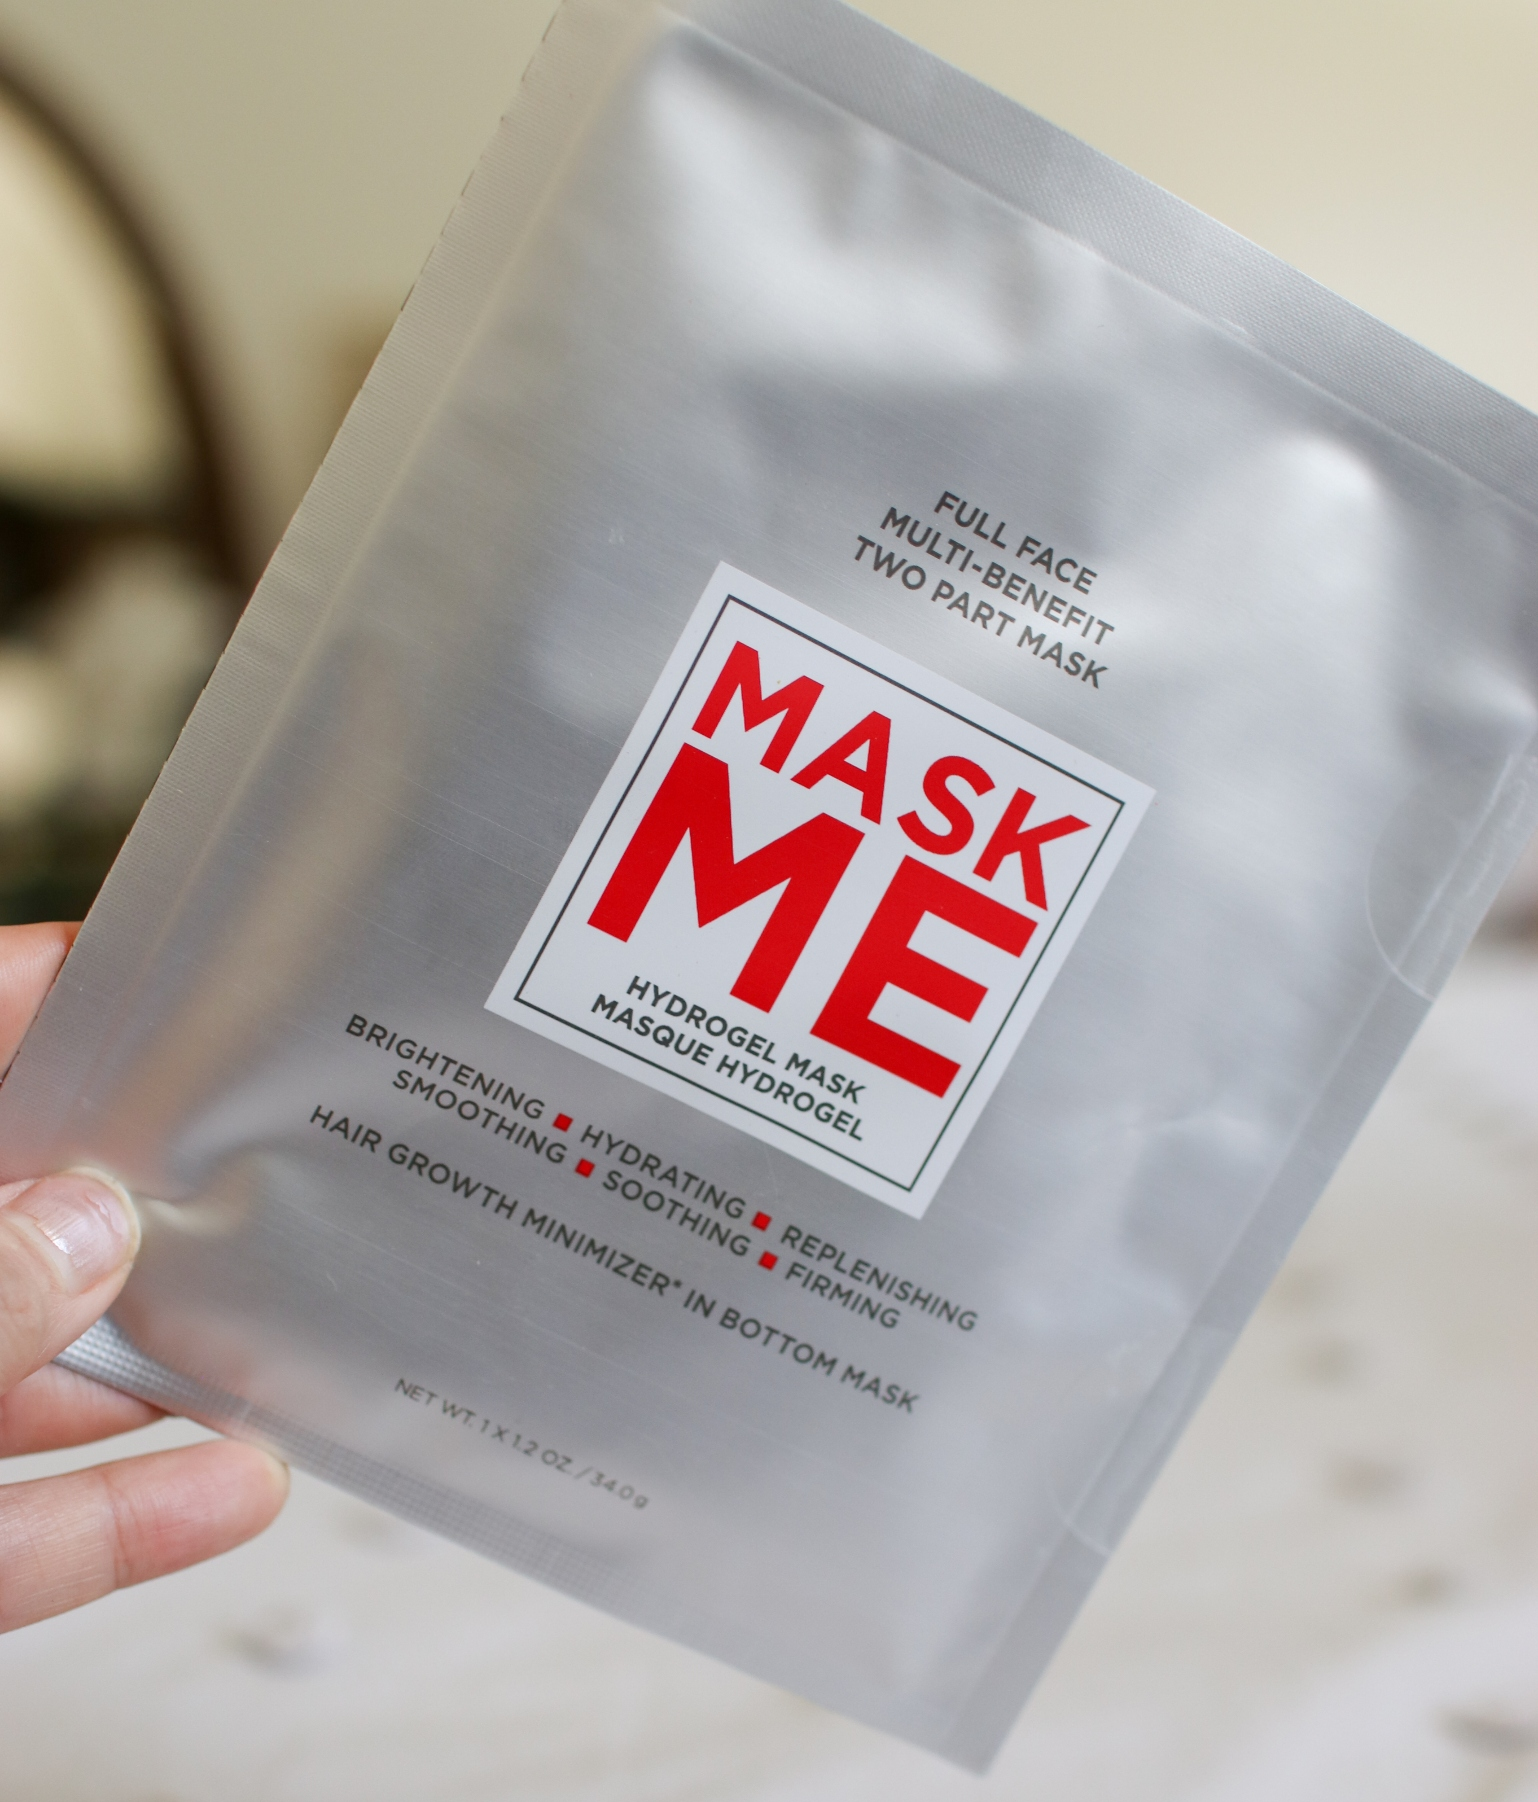 European Wax Center Mask Me Hydrogel Mask